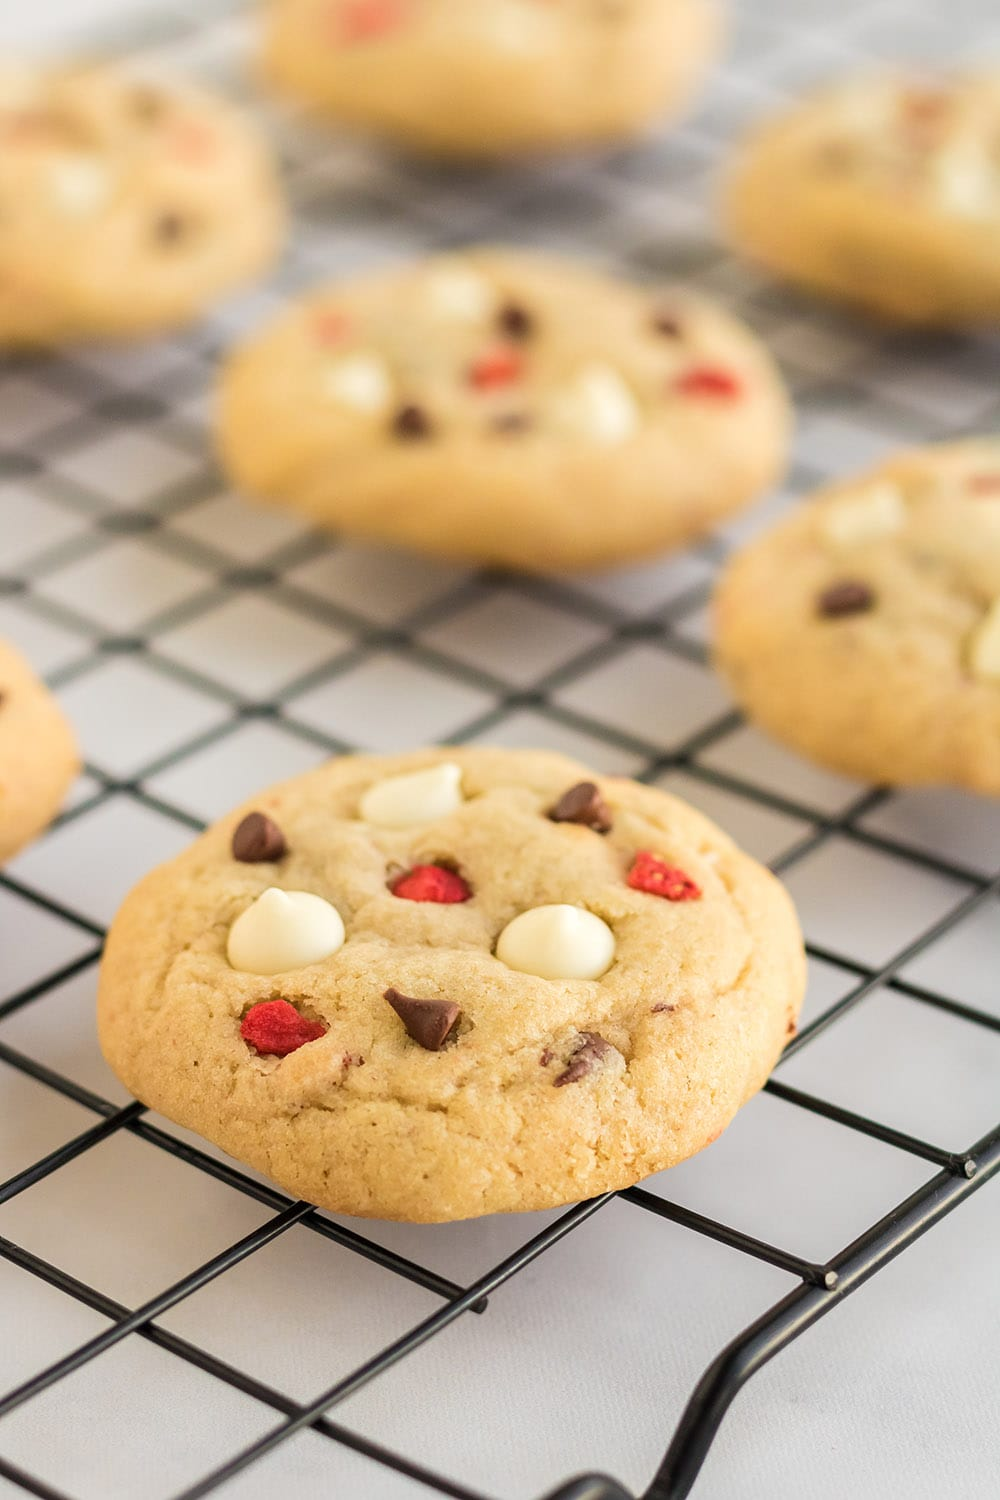 Strawberry cheesecake cookies on rack